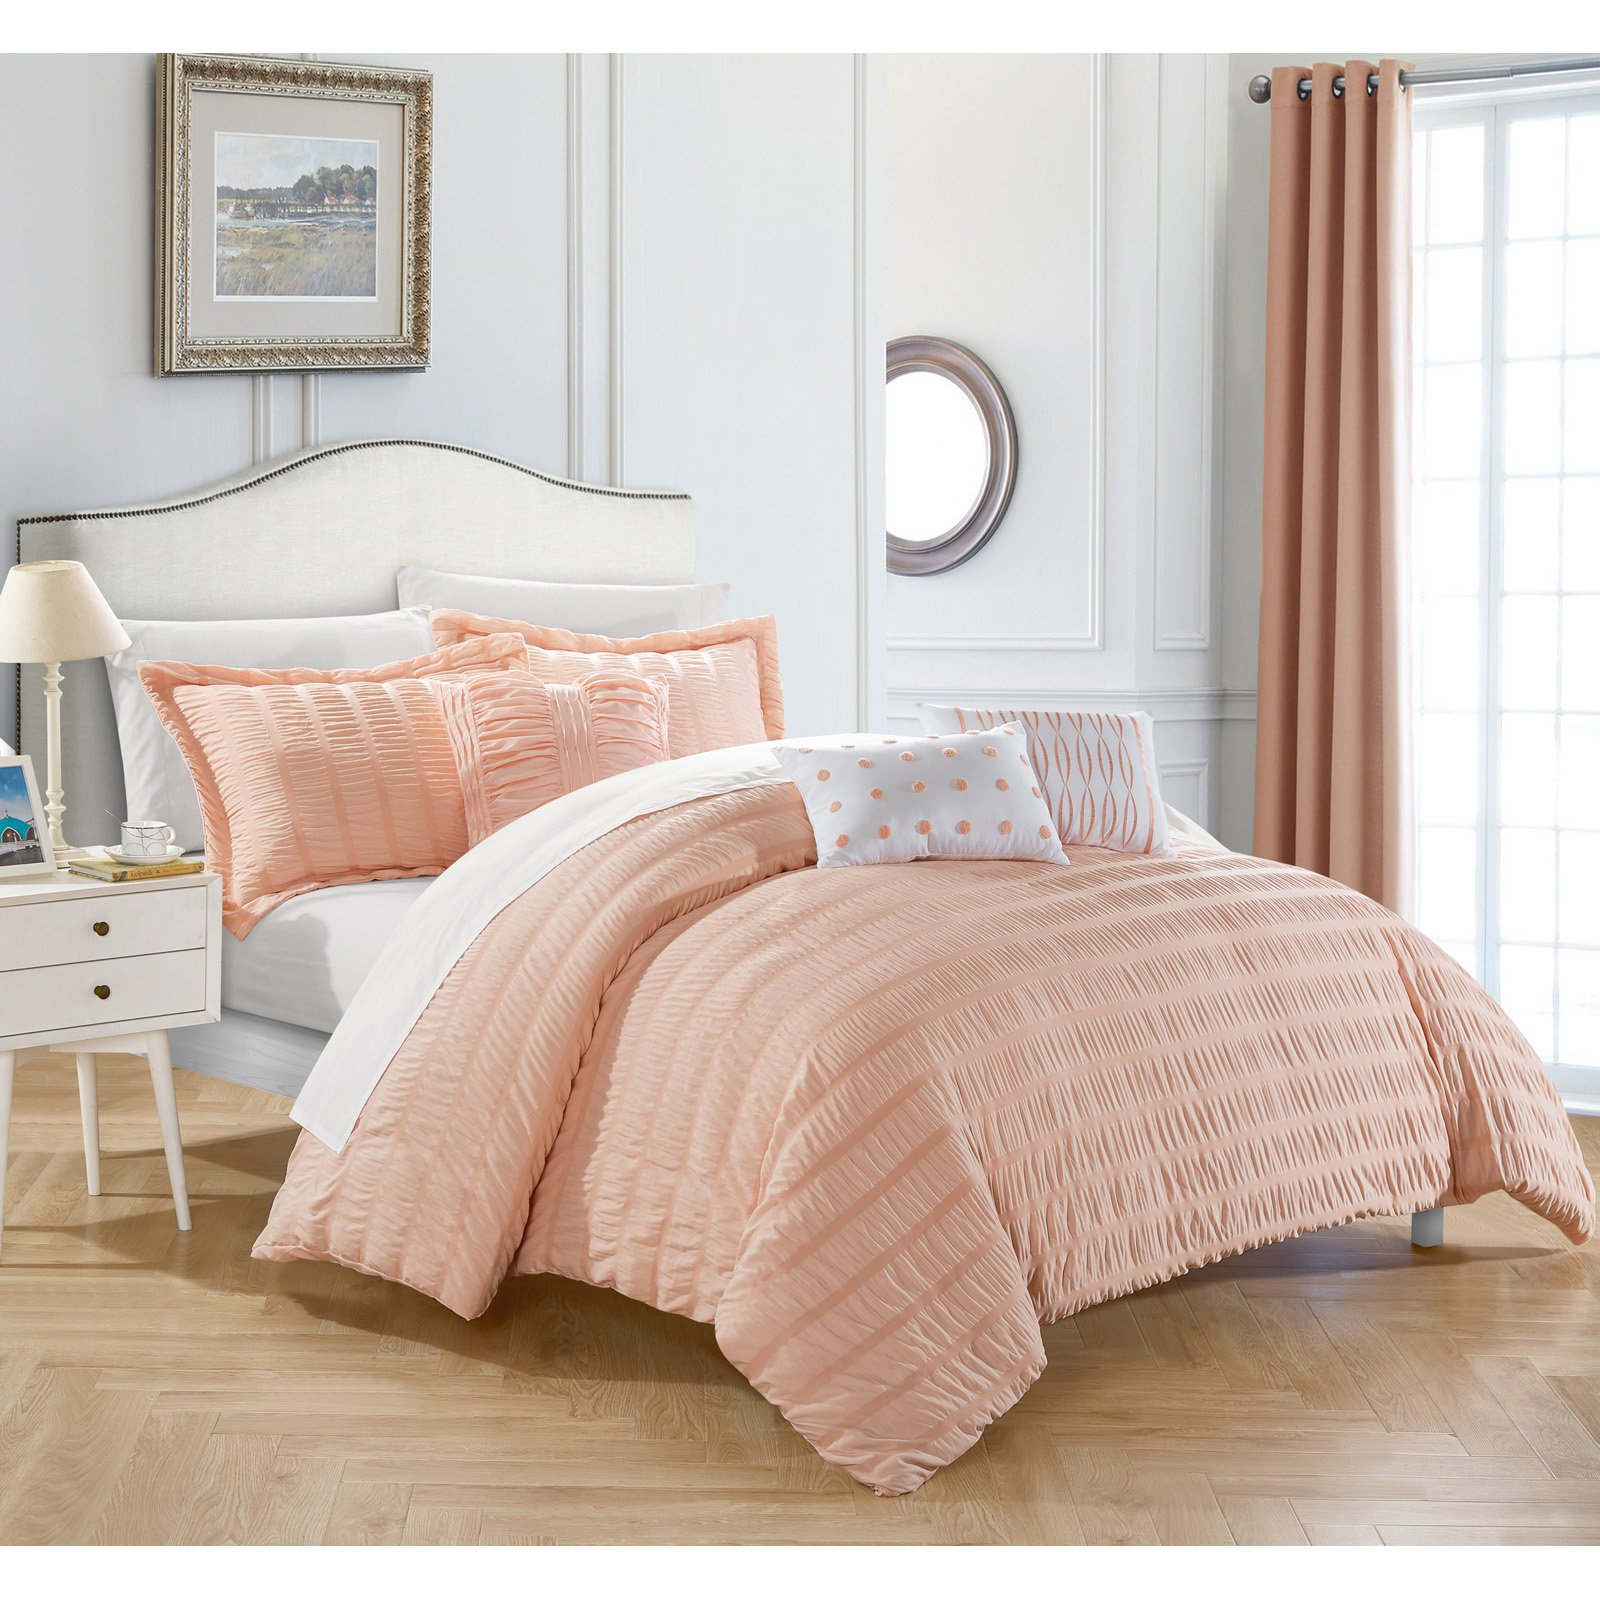 Jayrine Comforter Set by Chic Home